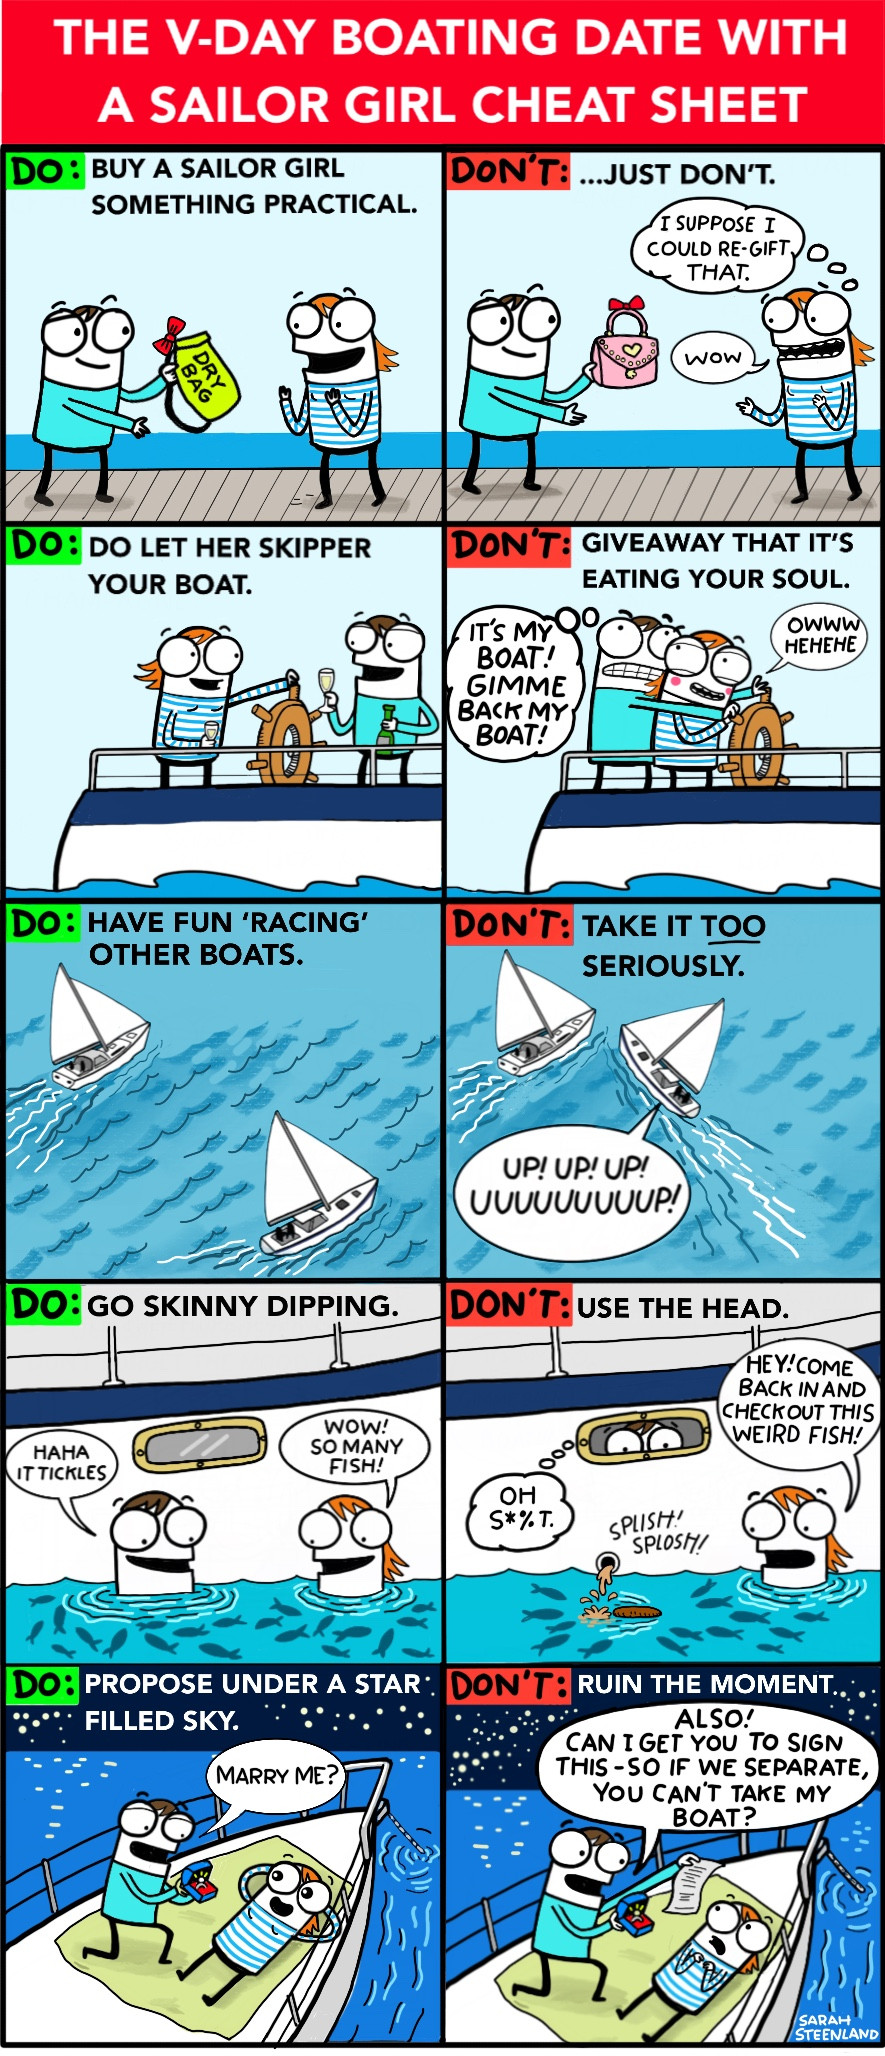 Valentine's Day Sailing Comic, Vday Sailing Comic, Cruising Comic, cruising cartoon, sailing cartoon, sailing comic, Sarah Steenland, cruising cartoonist, sailor girl, sailor girl cartoon, sailor girl comic, boating trip, boat date, romantic boating getaway,